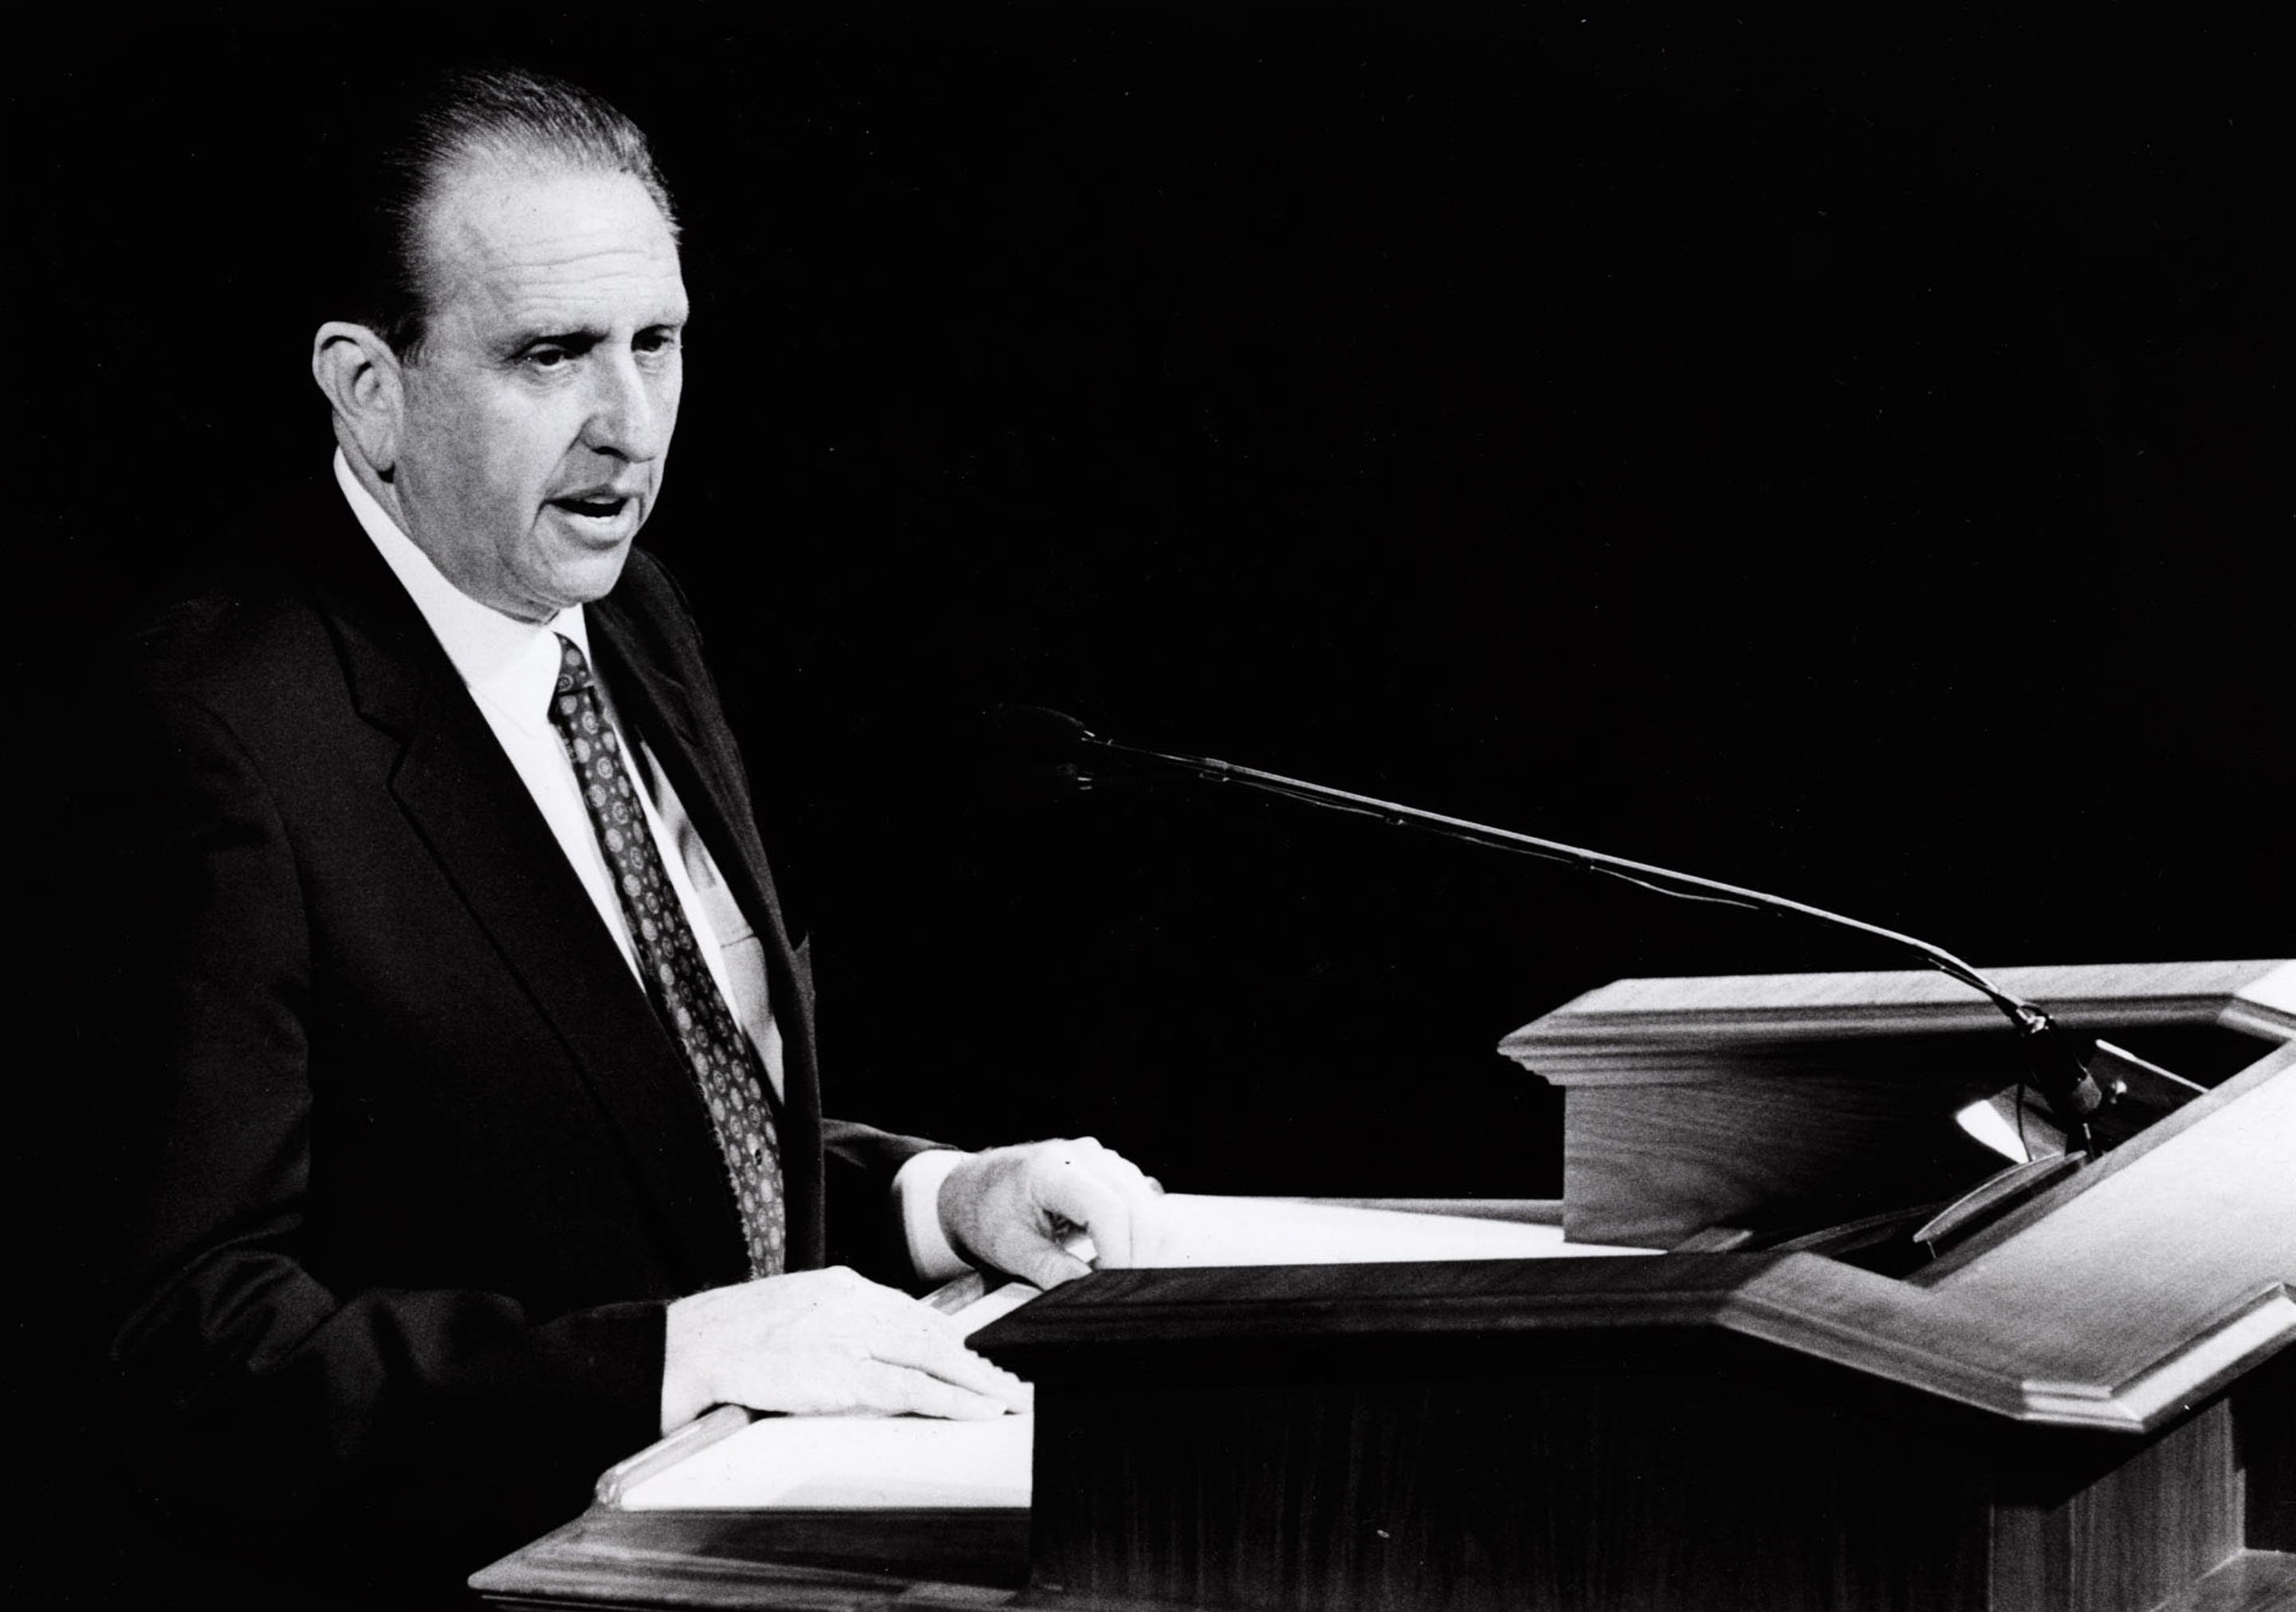 (Tribune file photo) President Thomas S. Monson reads a talk in 1994 by President Ezra Taft Benson when Monson was serving as second counselor in the faithÕs First Presidency.